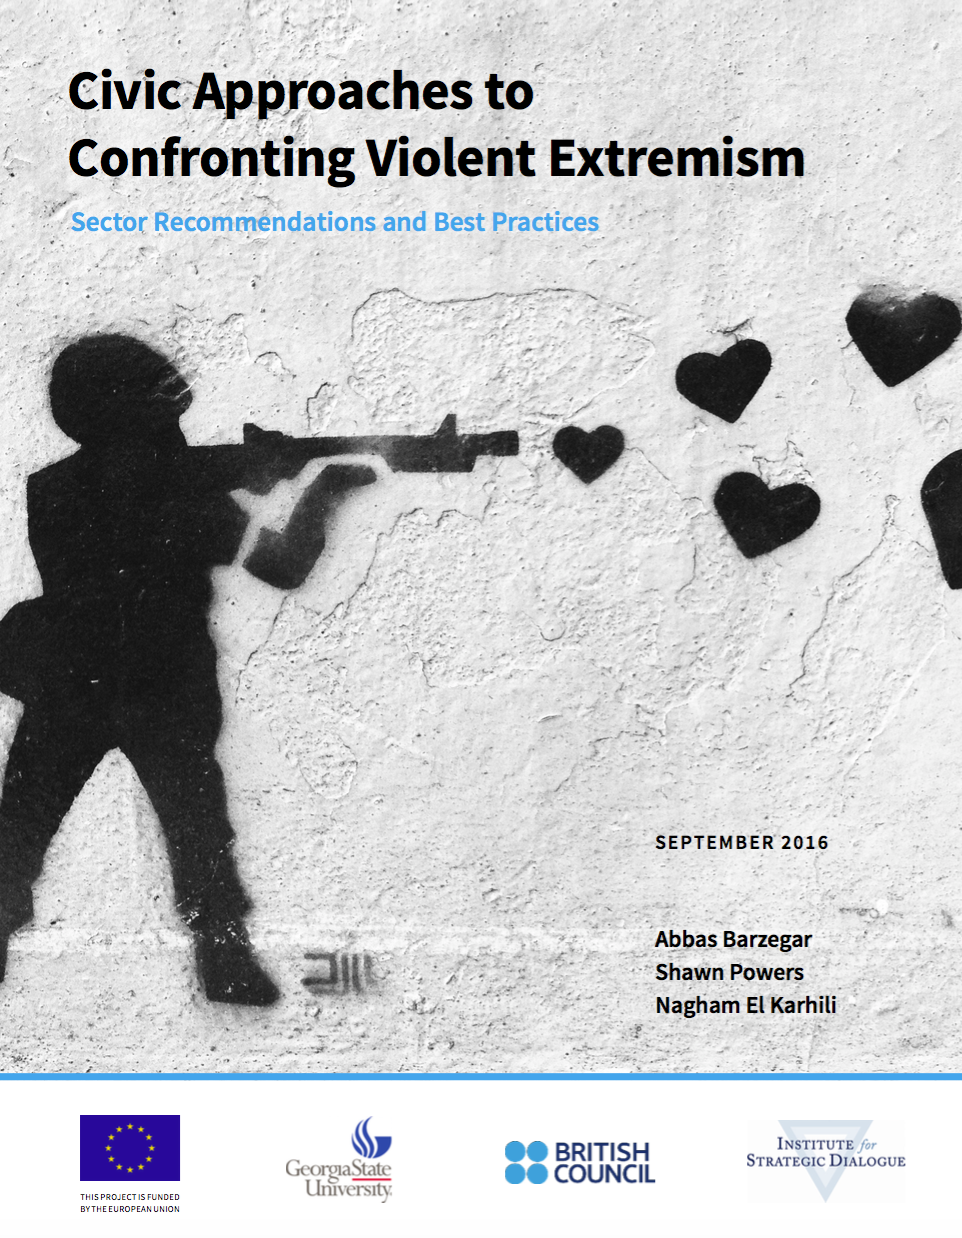 Civic Approaches to Confronting Violent Extremism